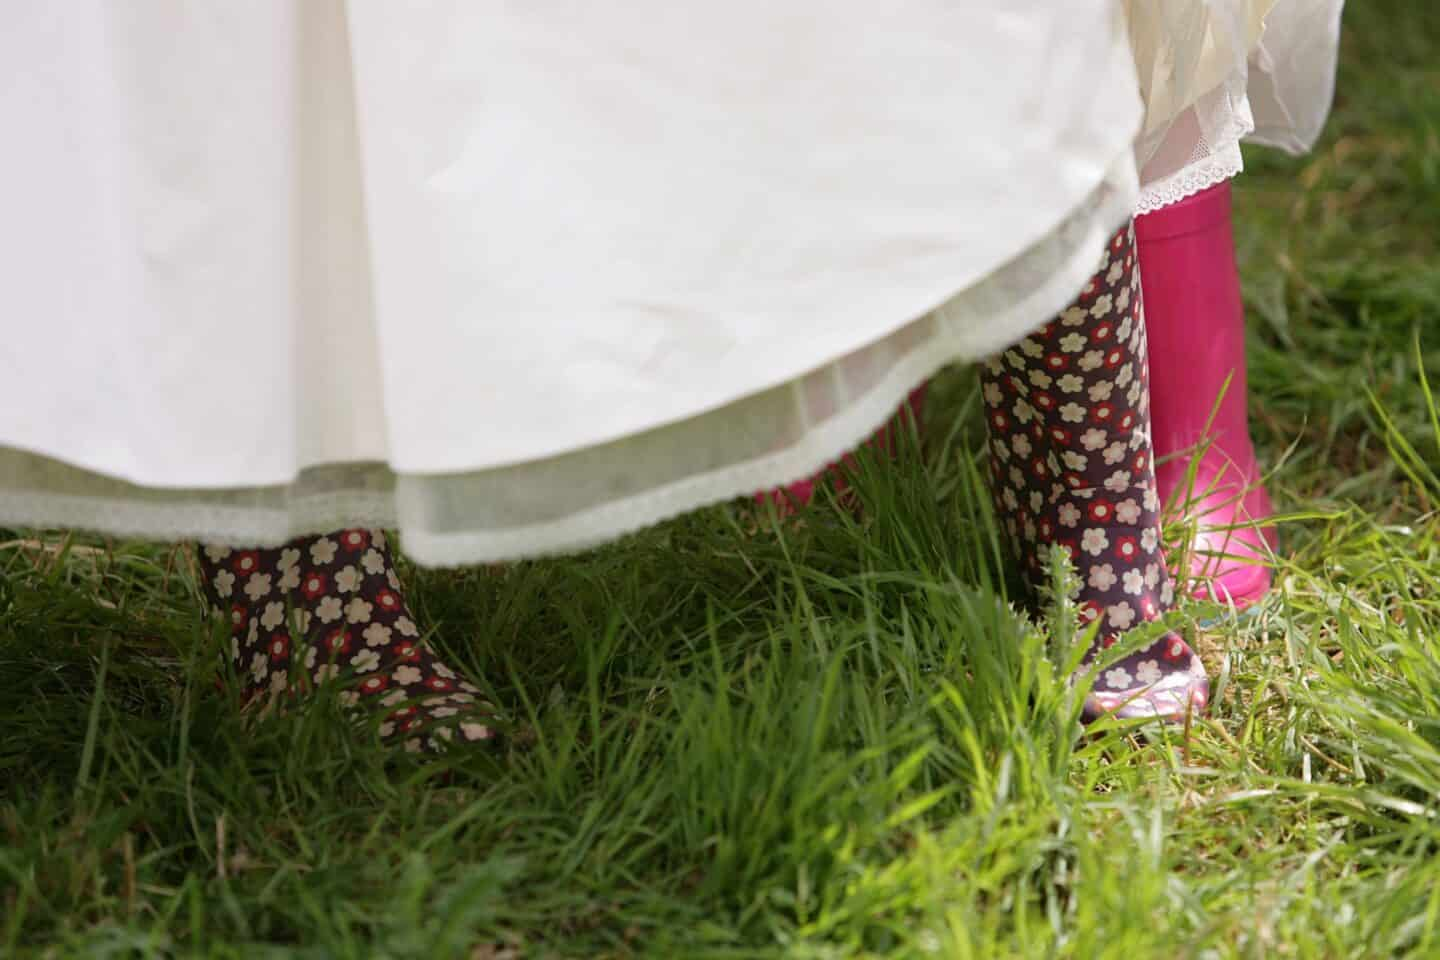 Wellies and a wedding dress